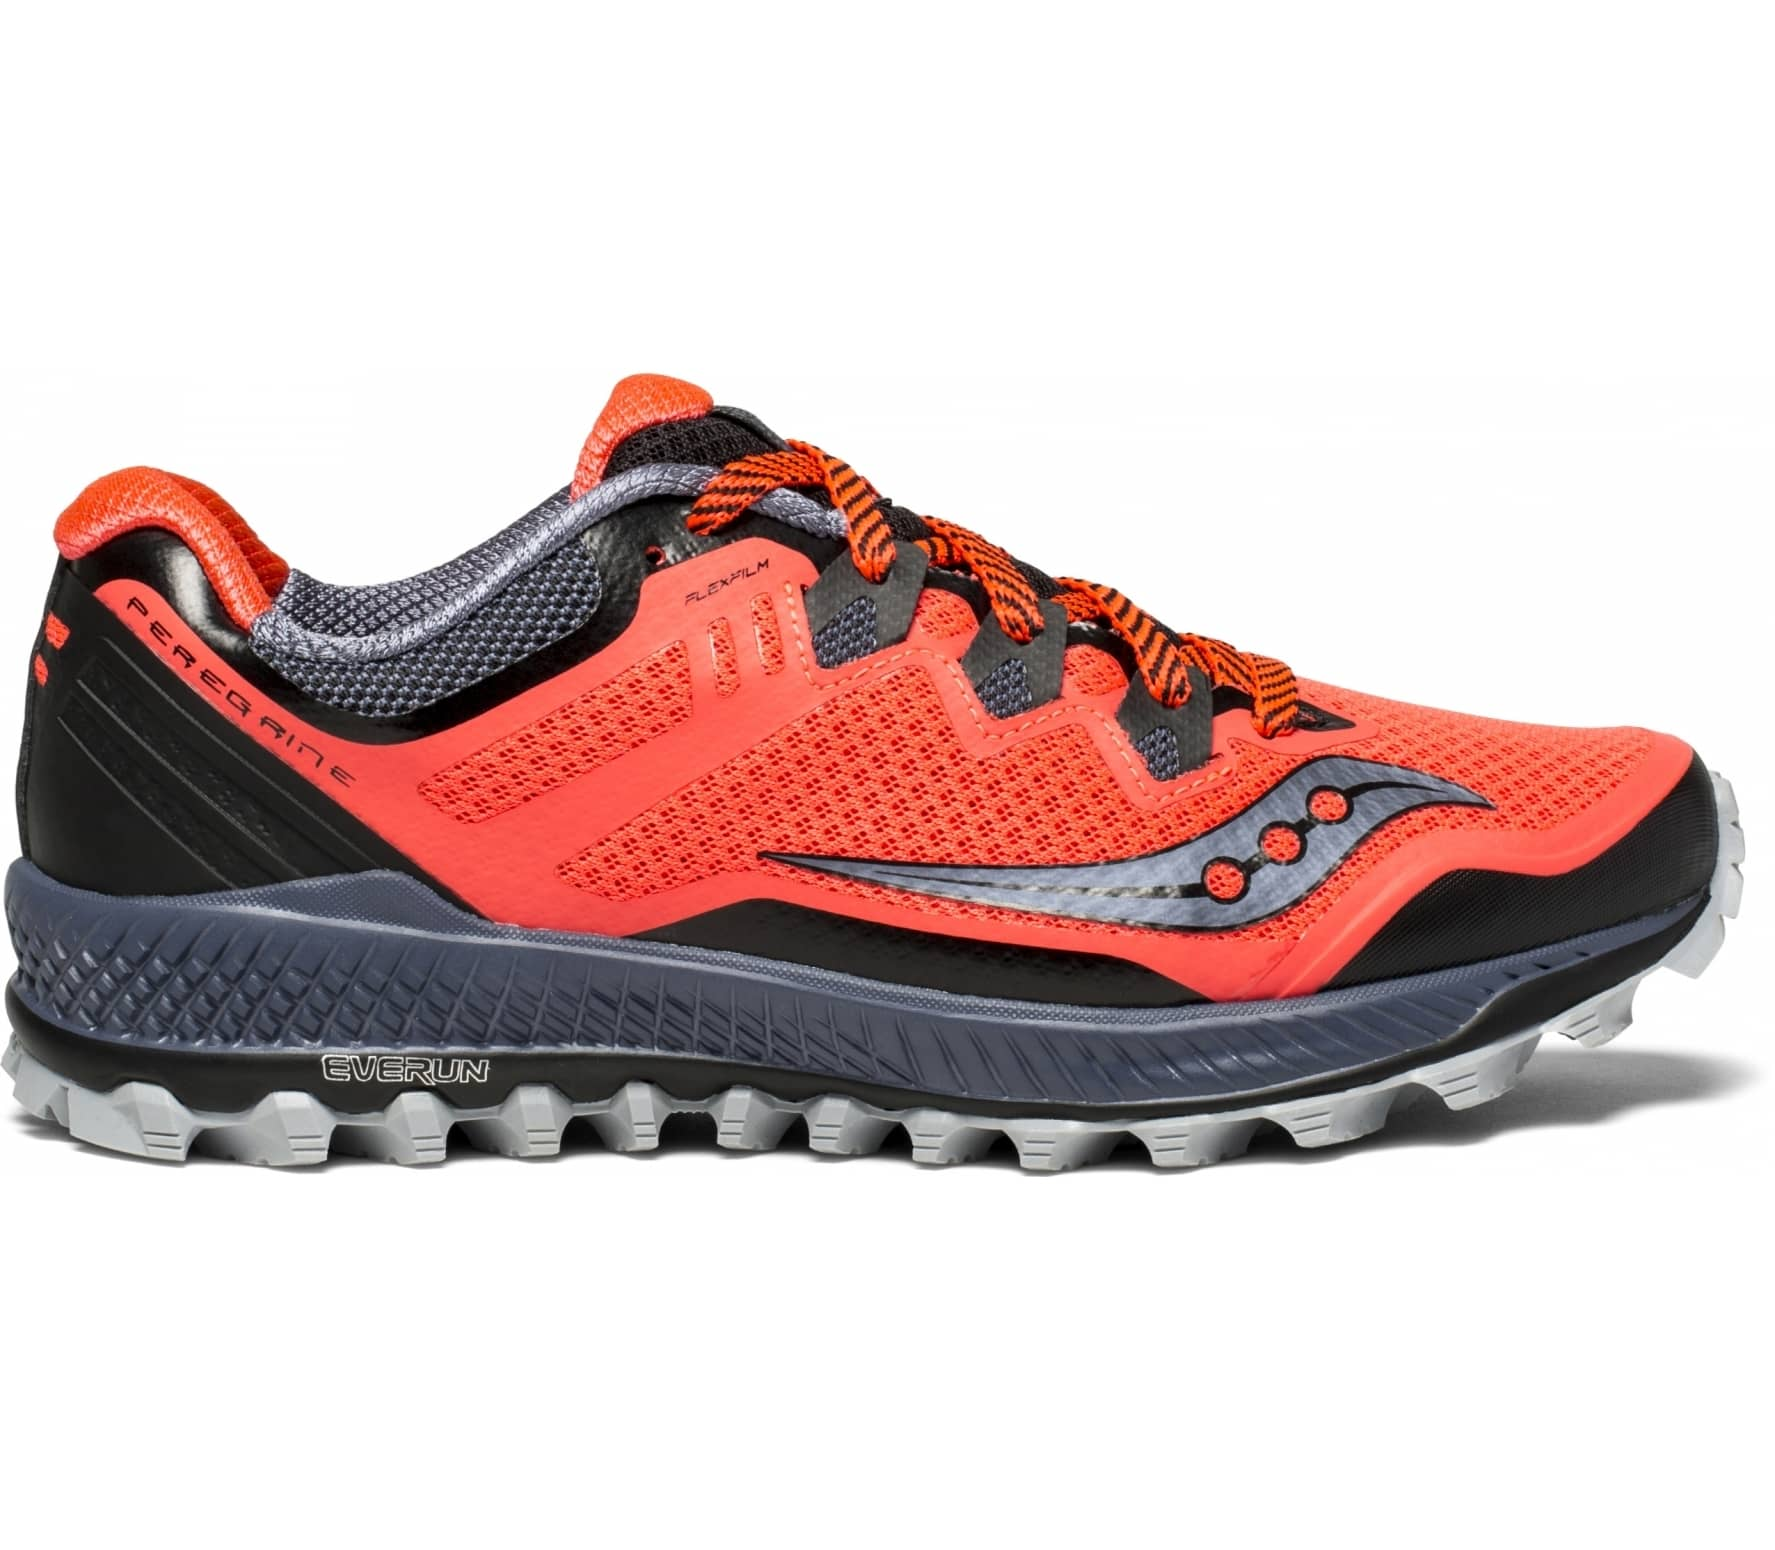 d1260cc531bf Saucony - Peregrine 8 women s running shoes (red black) - buy it at ...